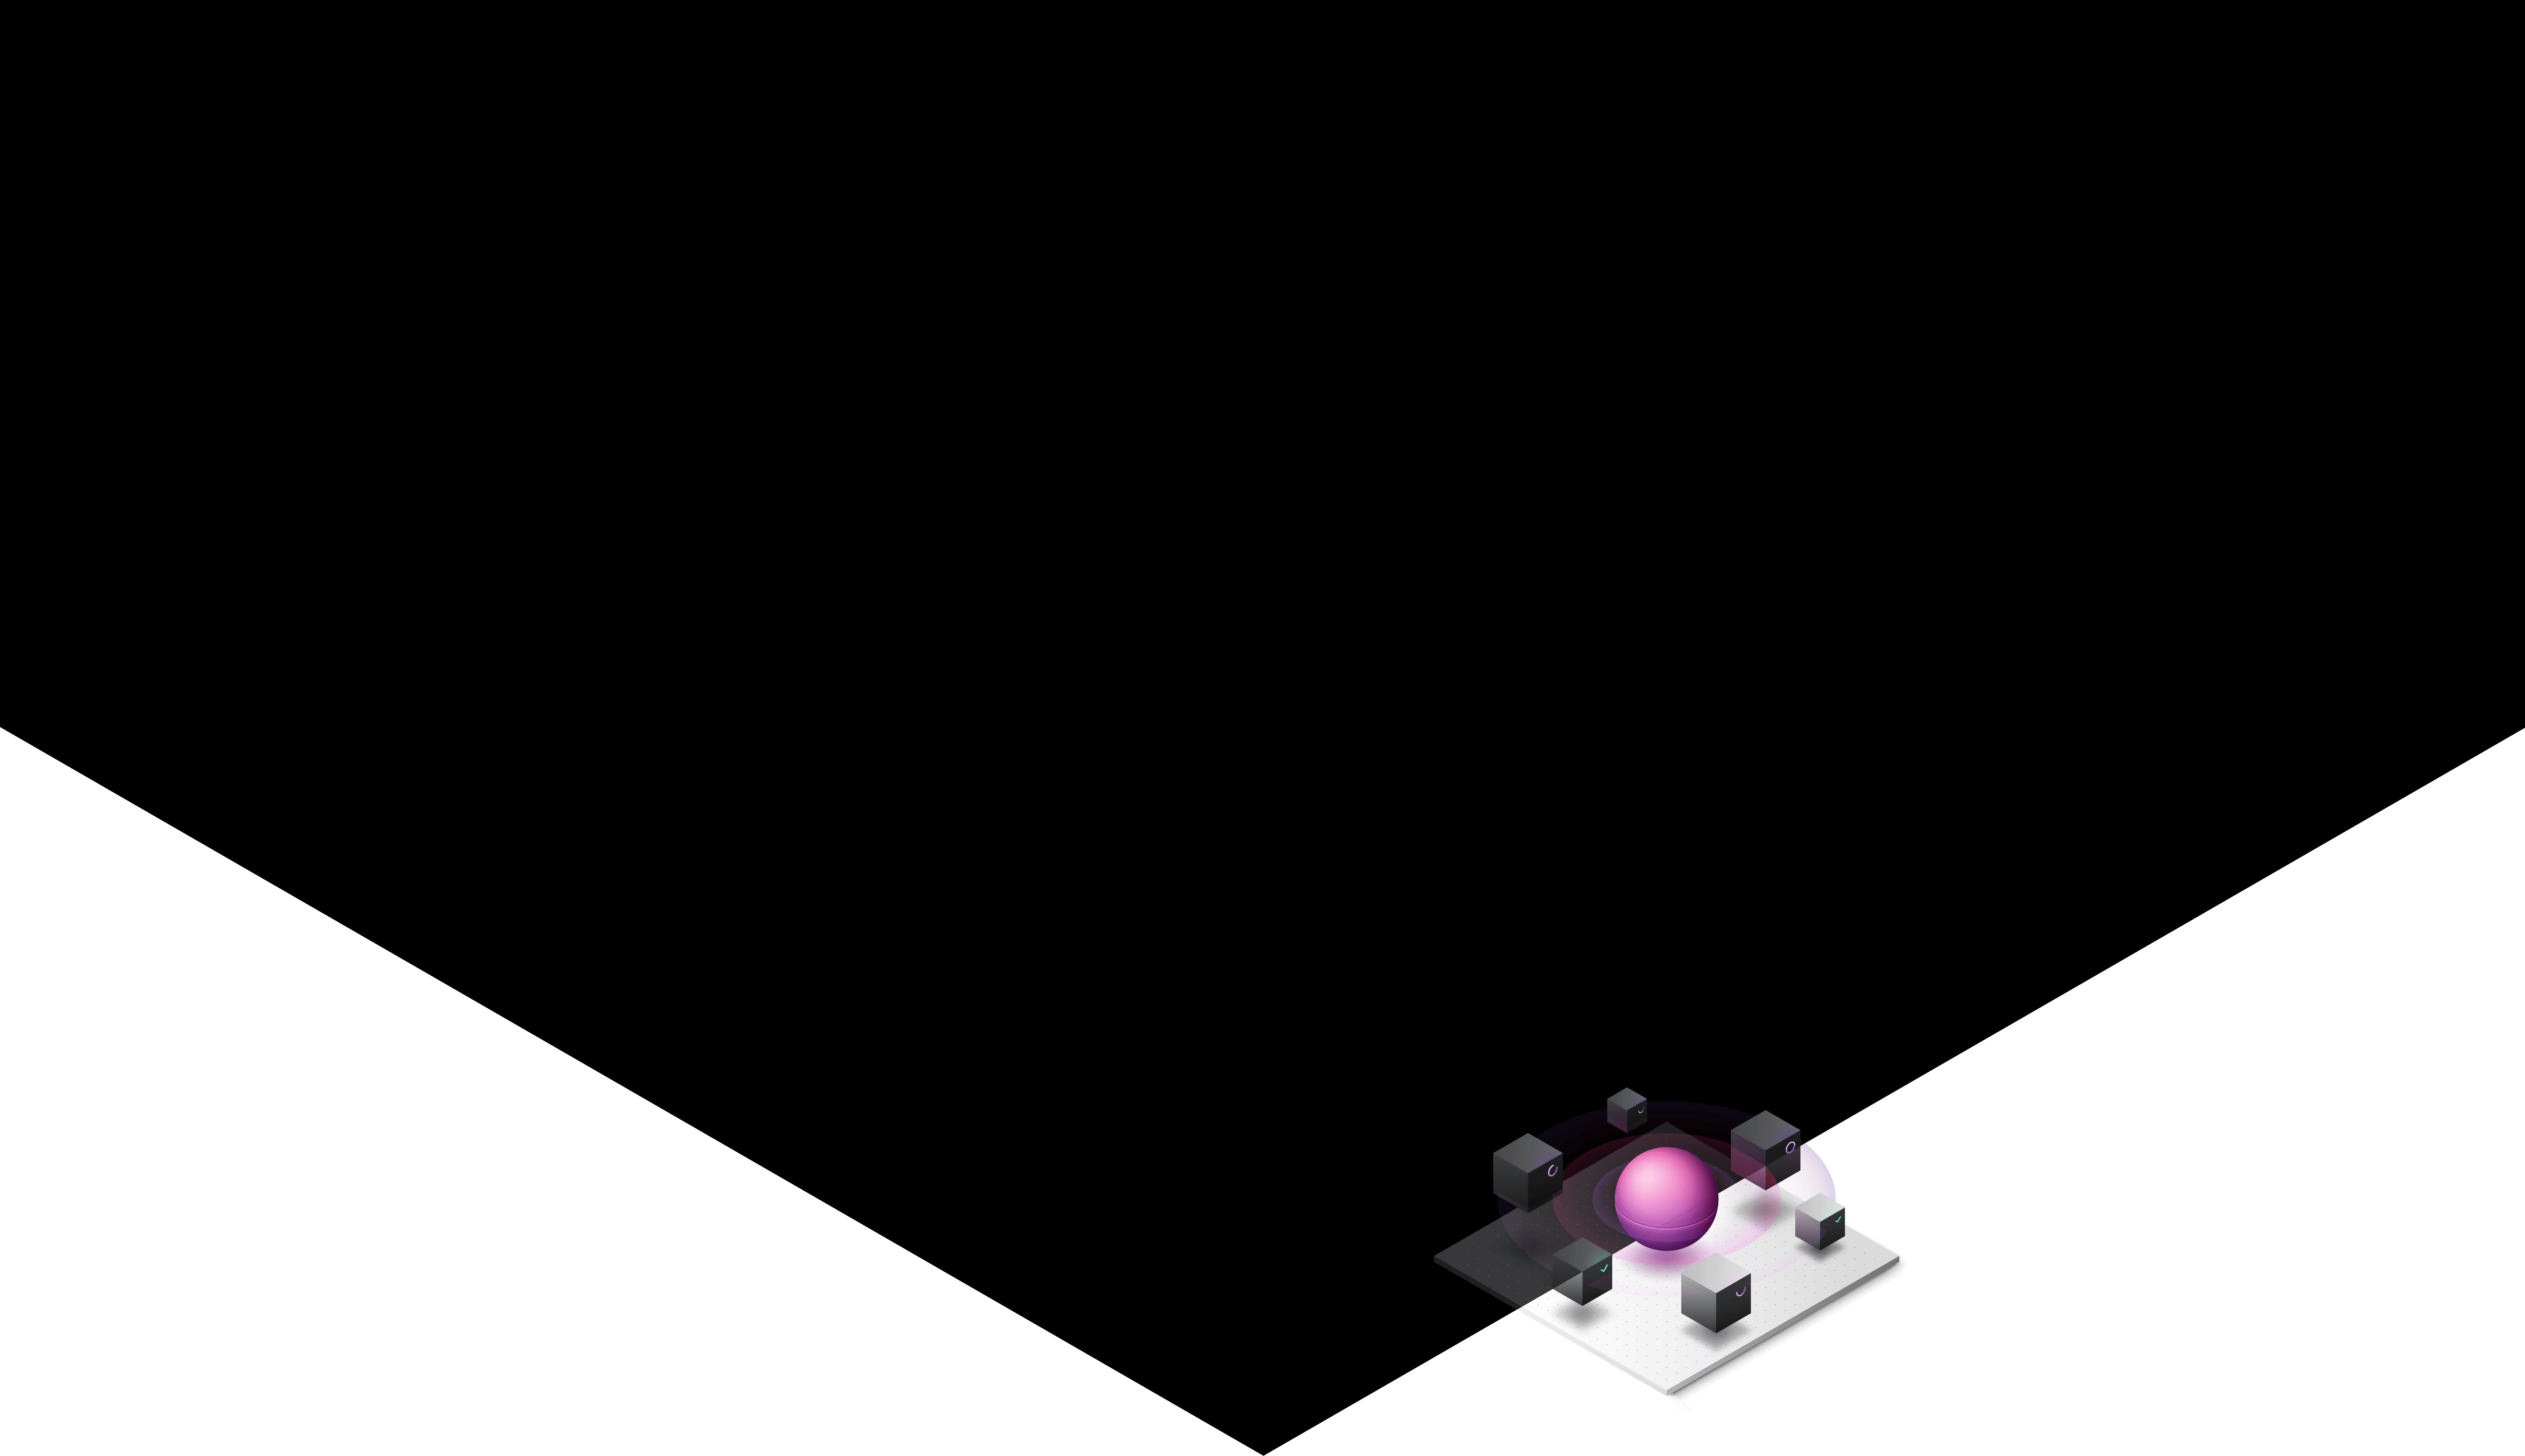 Background: black triangle with geometric automation diagram